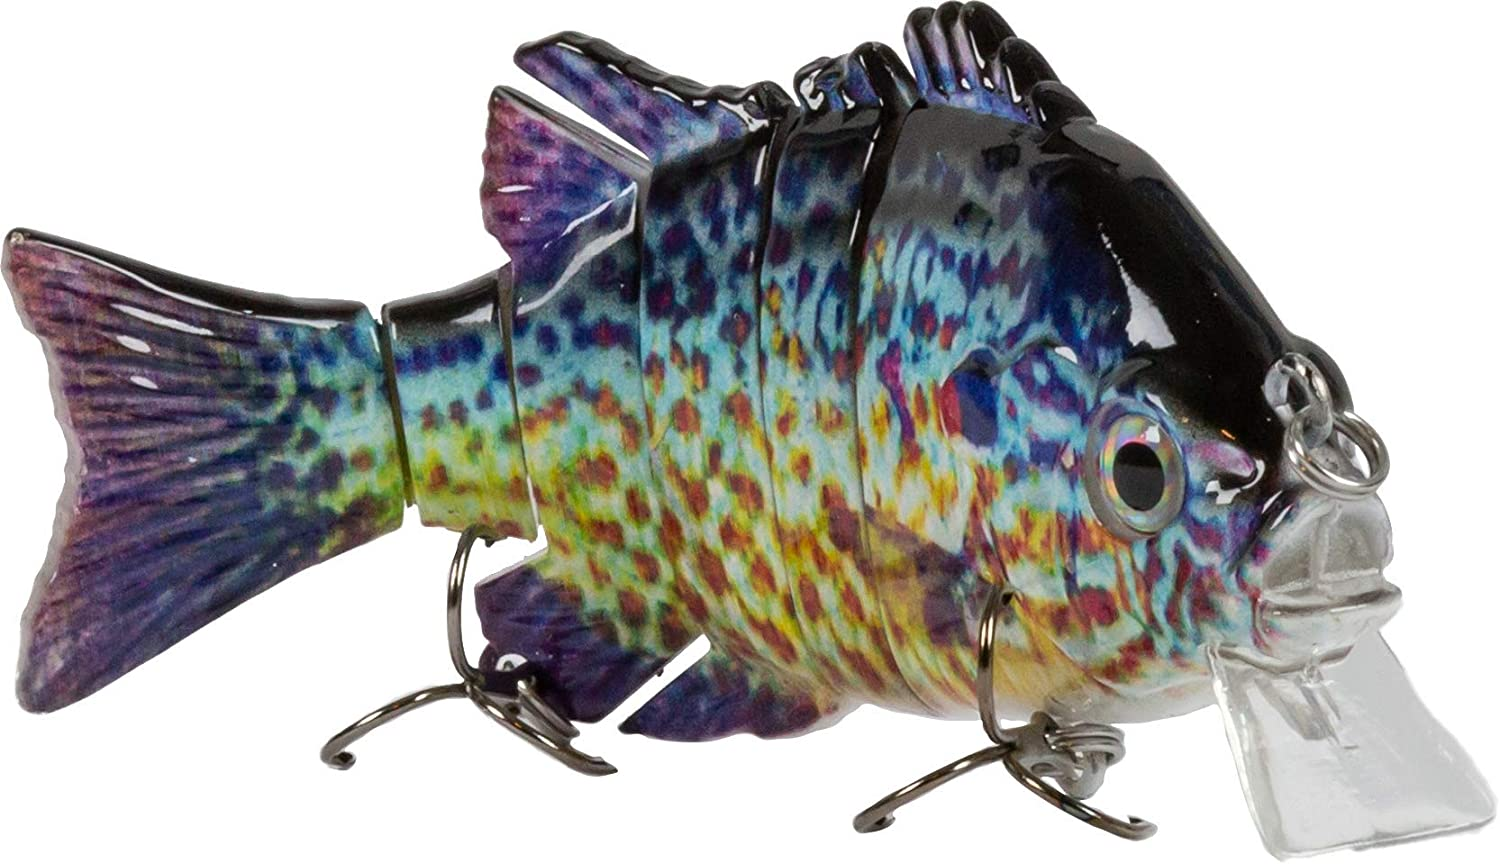 Sunrise Angler 4 Inch Bluegill Jointed Swimbait Curvy S Swim and 3D Prismatic Eyes Sinking Hard Bait Fishing Lure for Freshwater Game Fishing with Textured Lifelike Skin